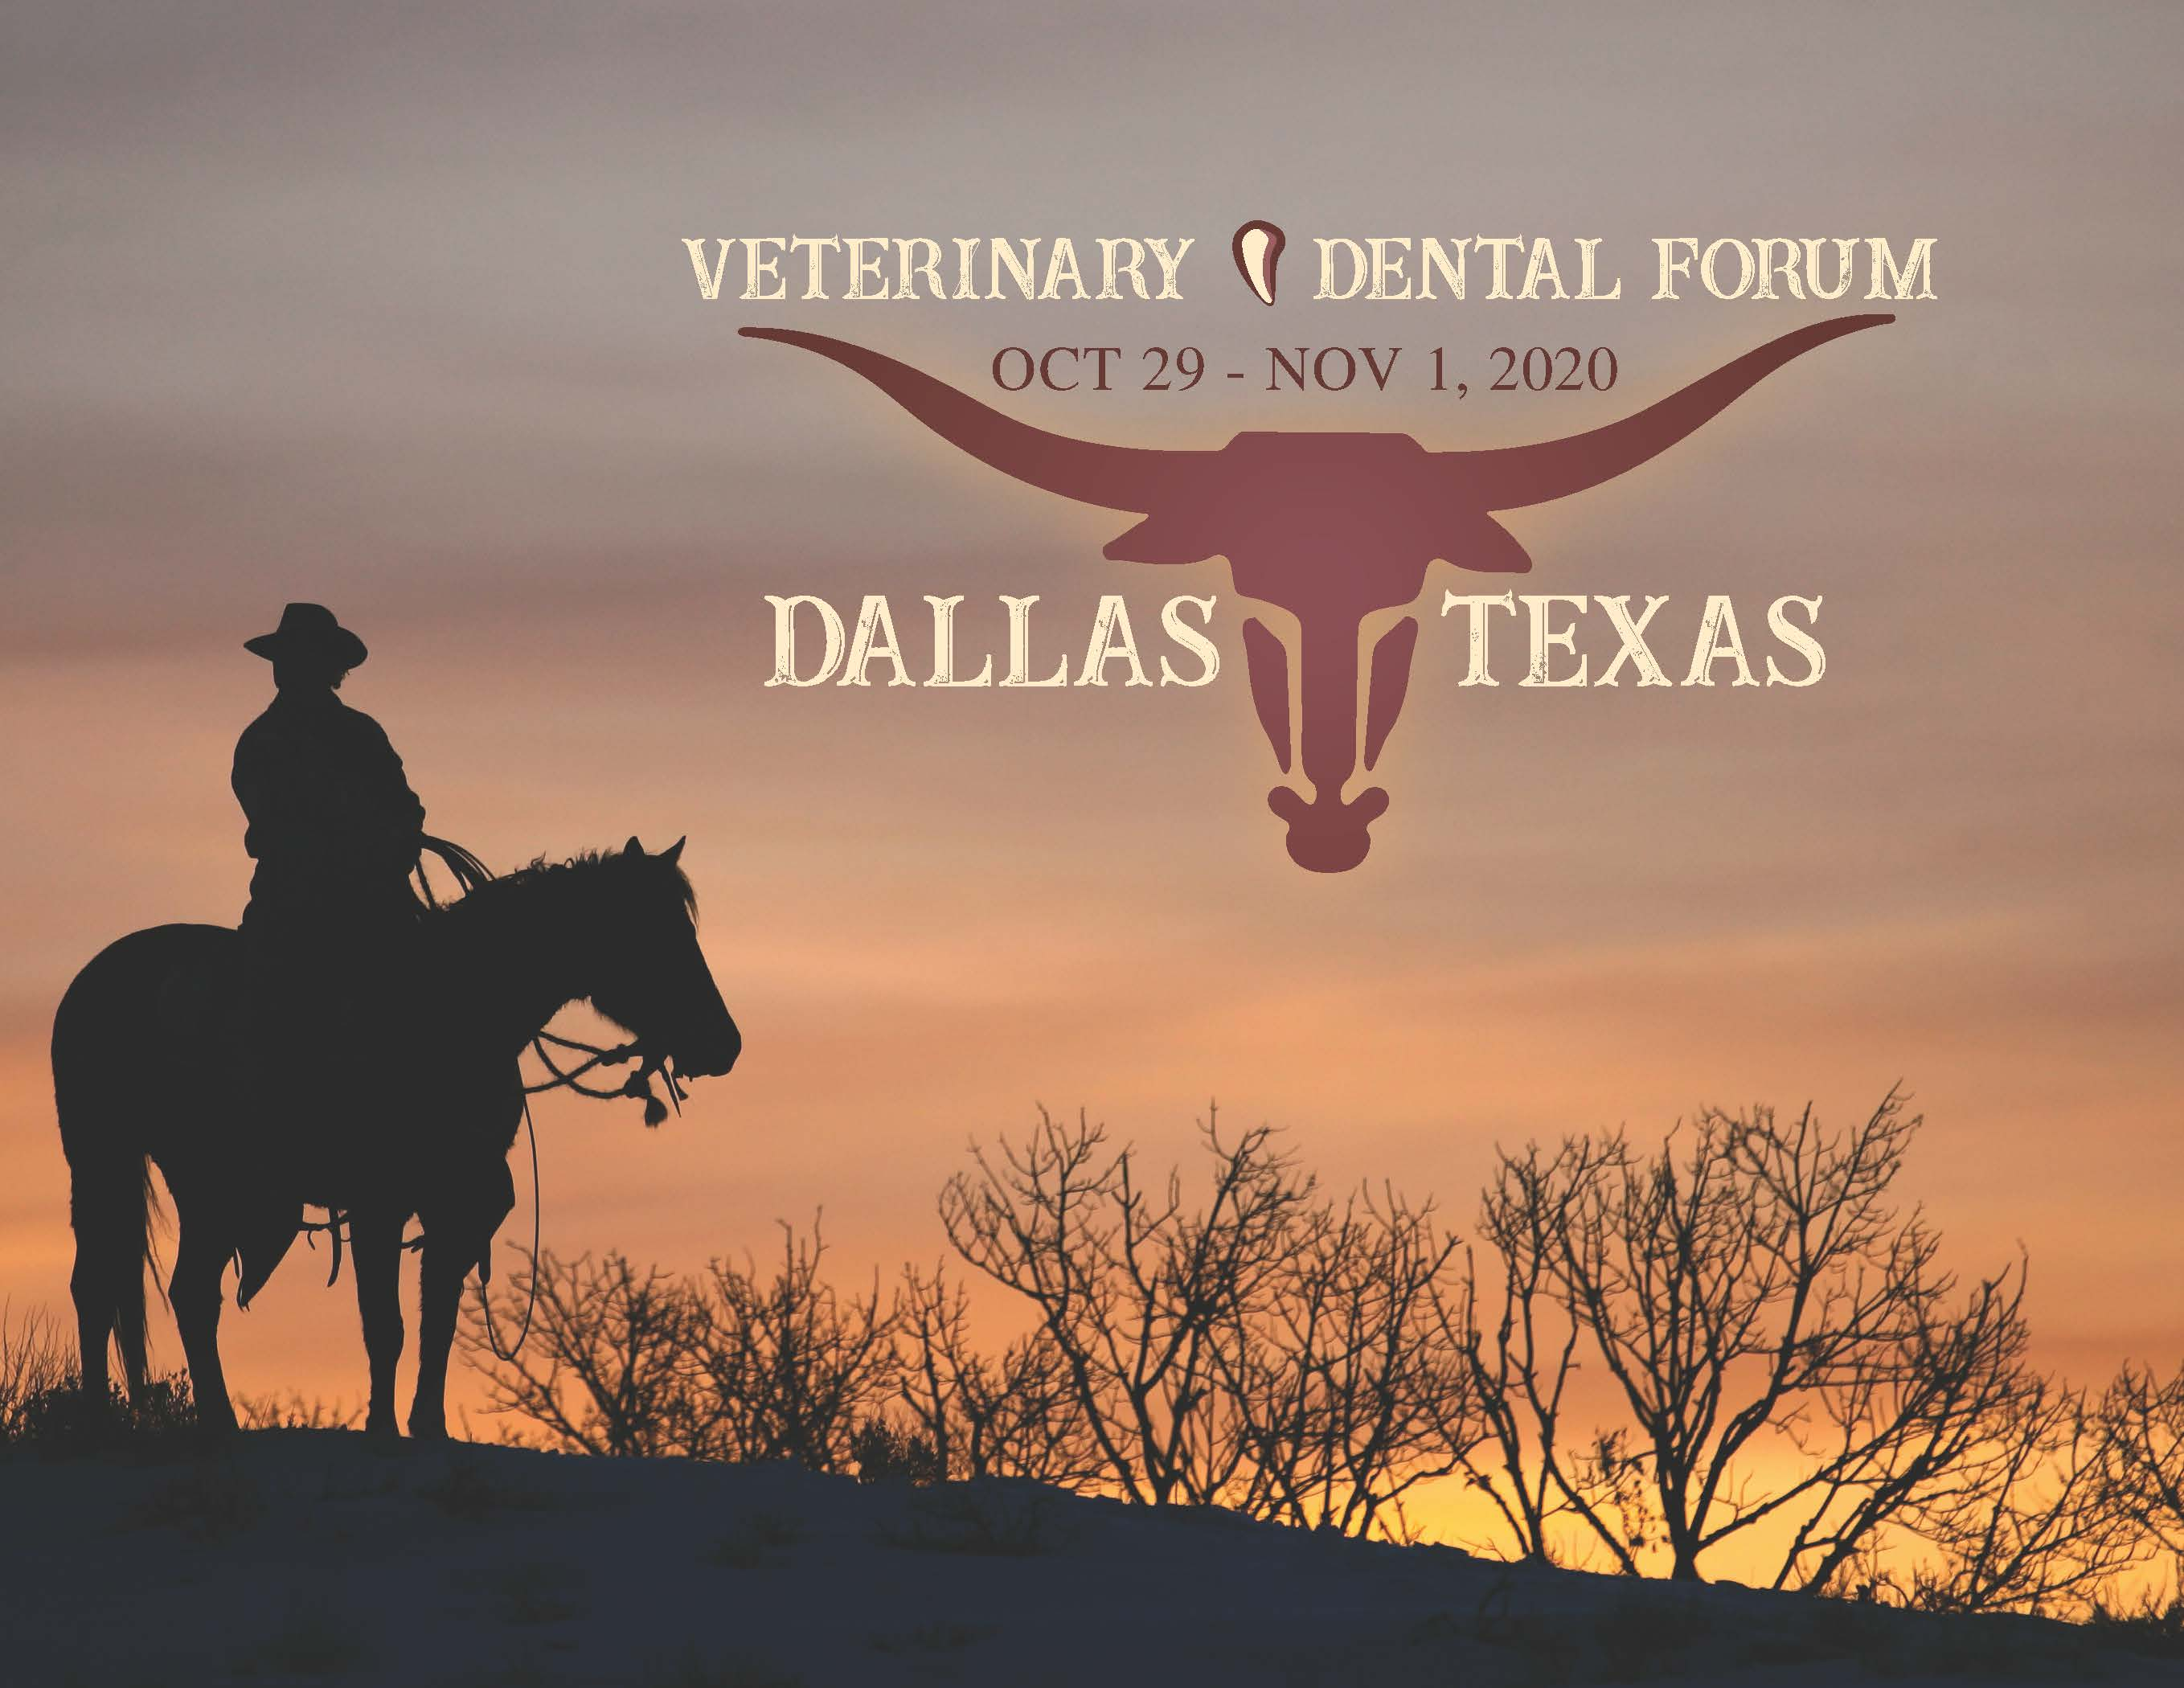 veterinary dental forum